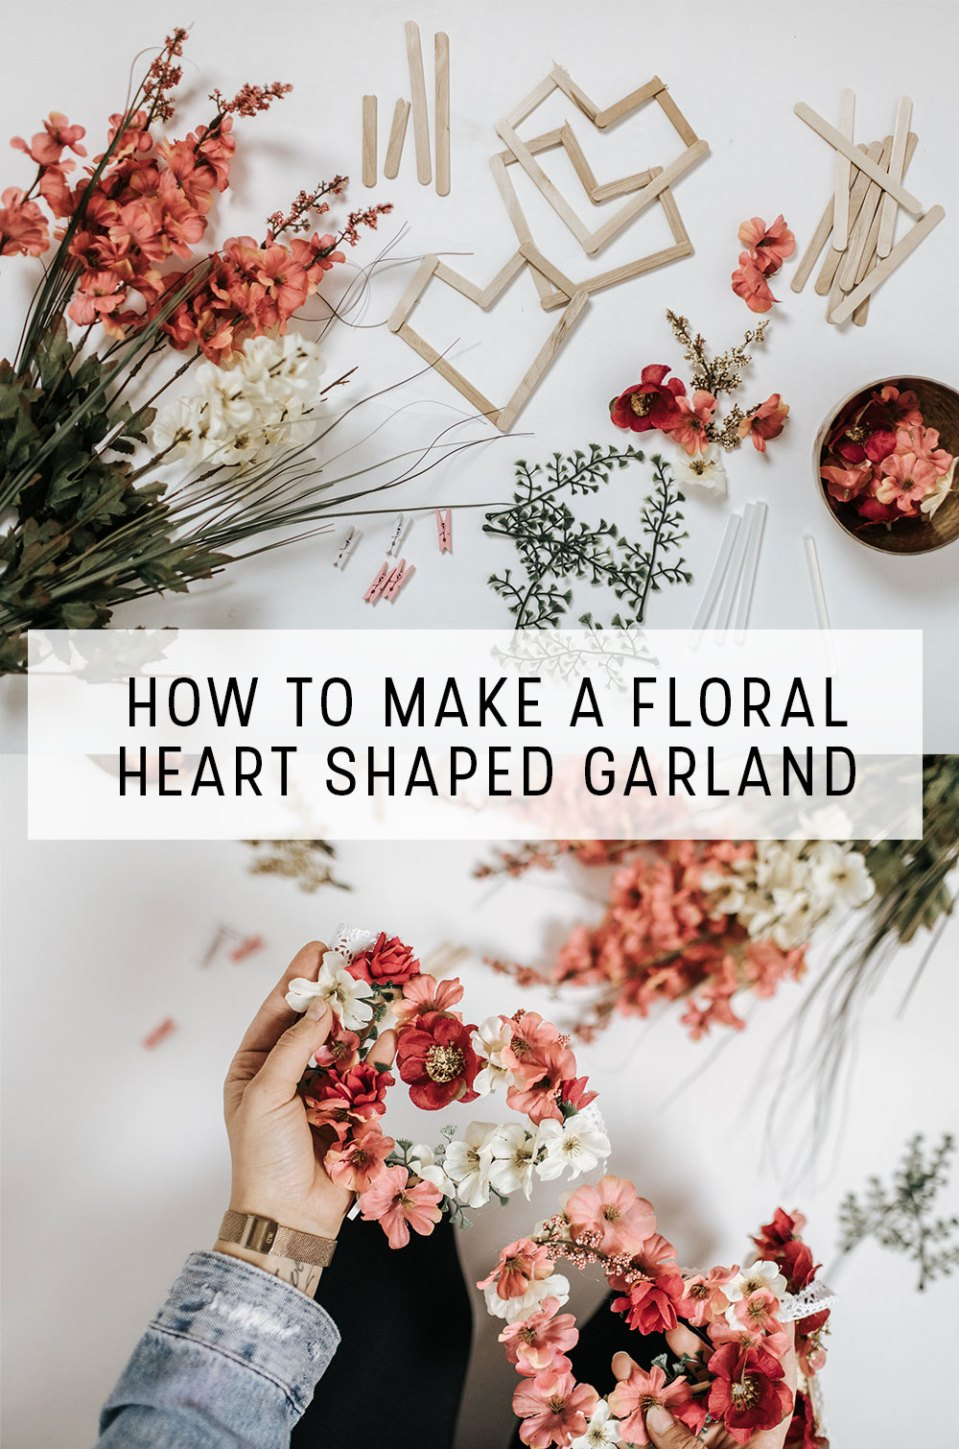 How to Make a Floral Heart Shaped Banner | Easy and Simple way to add Valentine's Day Home Decor into your home. Use popsicle sticks to make the hearts and then faux florals to create the flower heart shape. Viola floral heart shaped garland is complete.